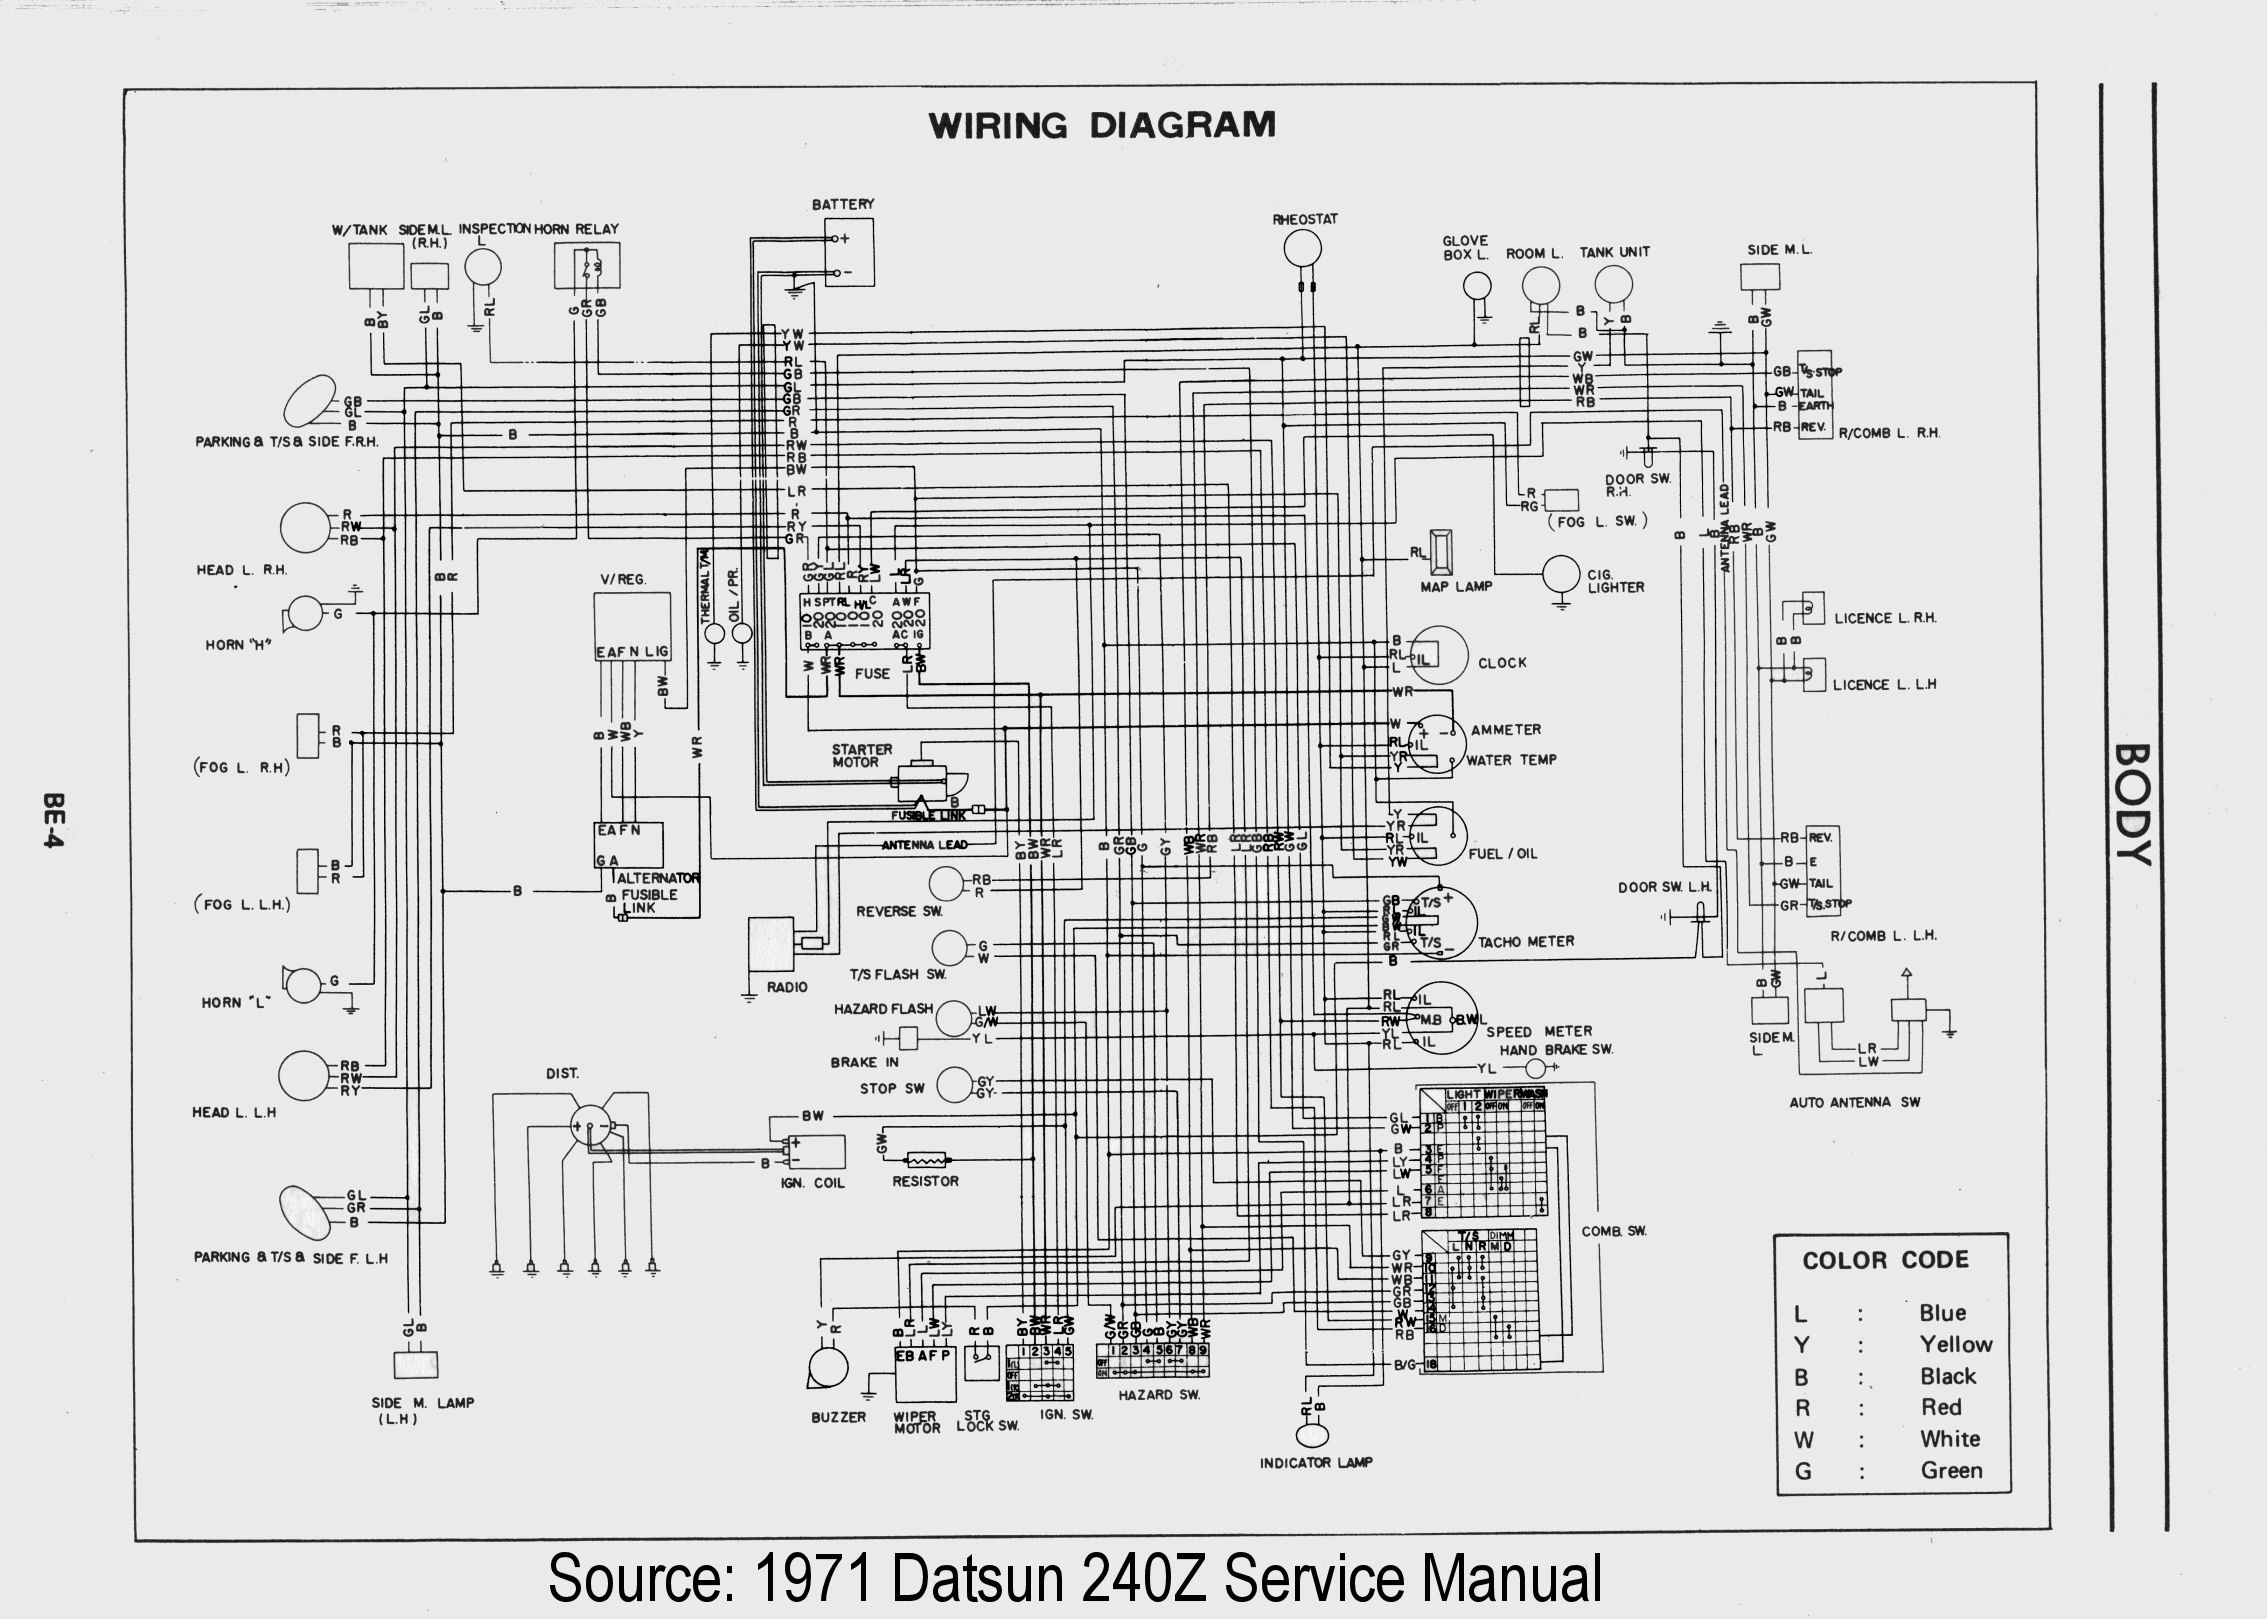 Wiring Diagram HiRes 2 240z wiring diagram 73 240z wiring diagram \u2022 wiring diagrams j datsun 720 wiring diagram at n-0.co